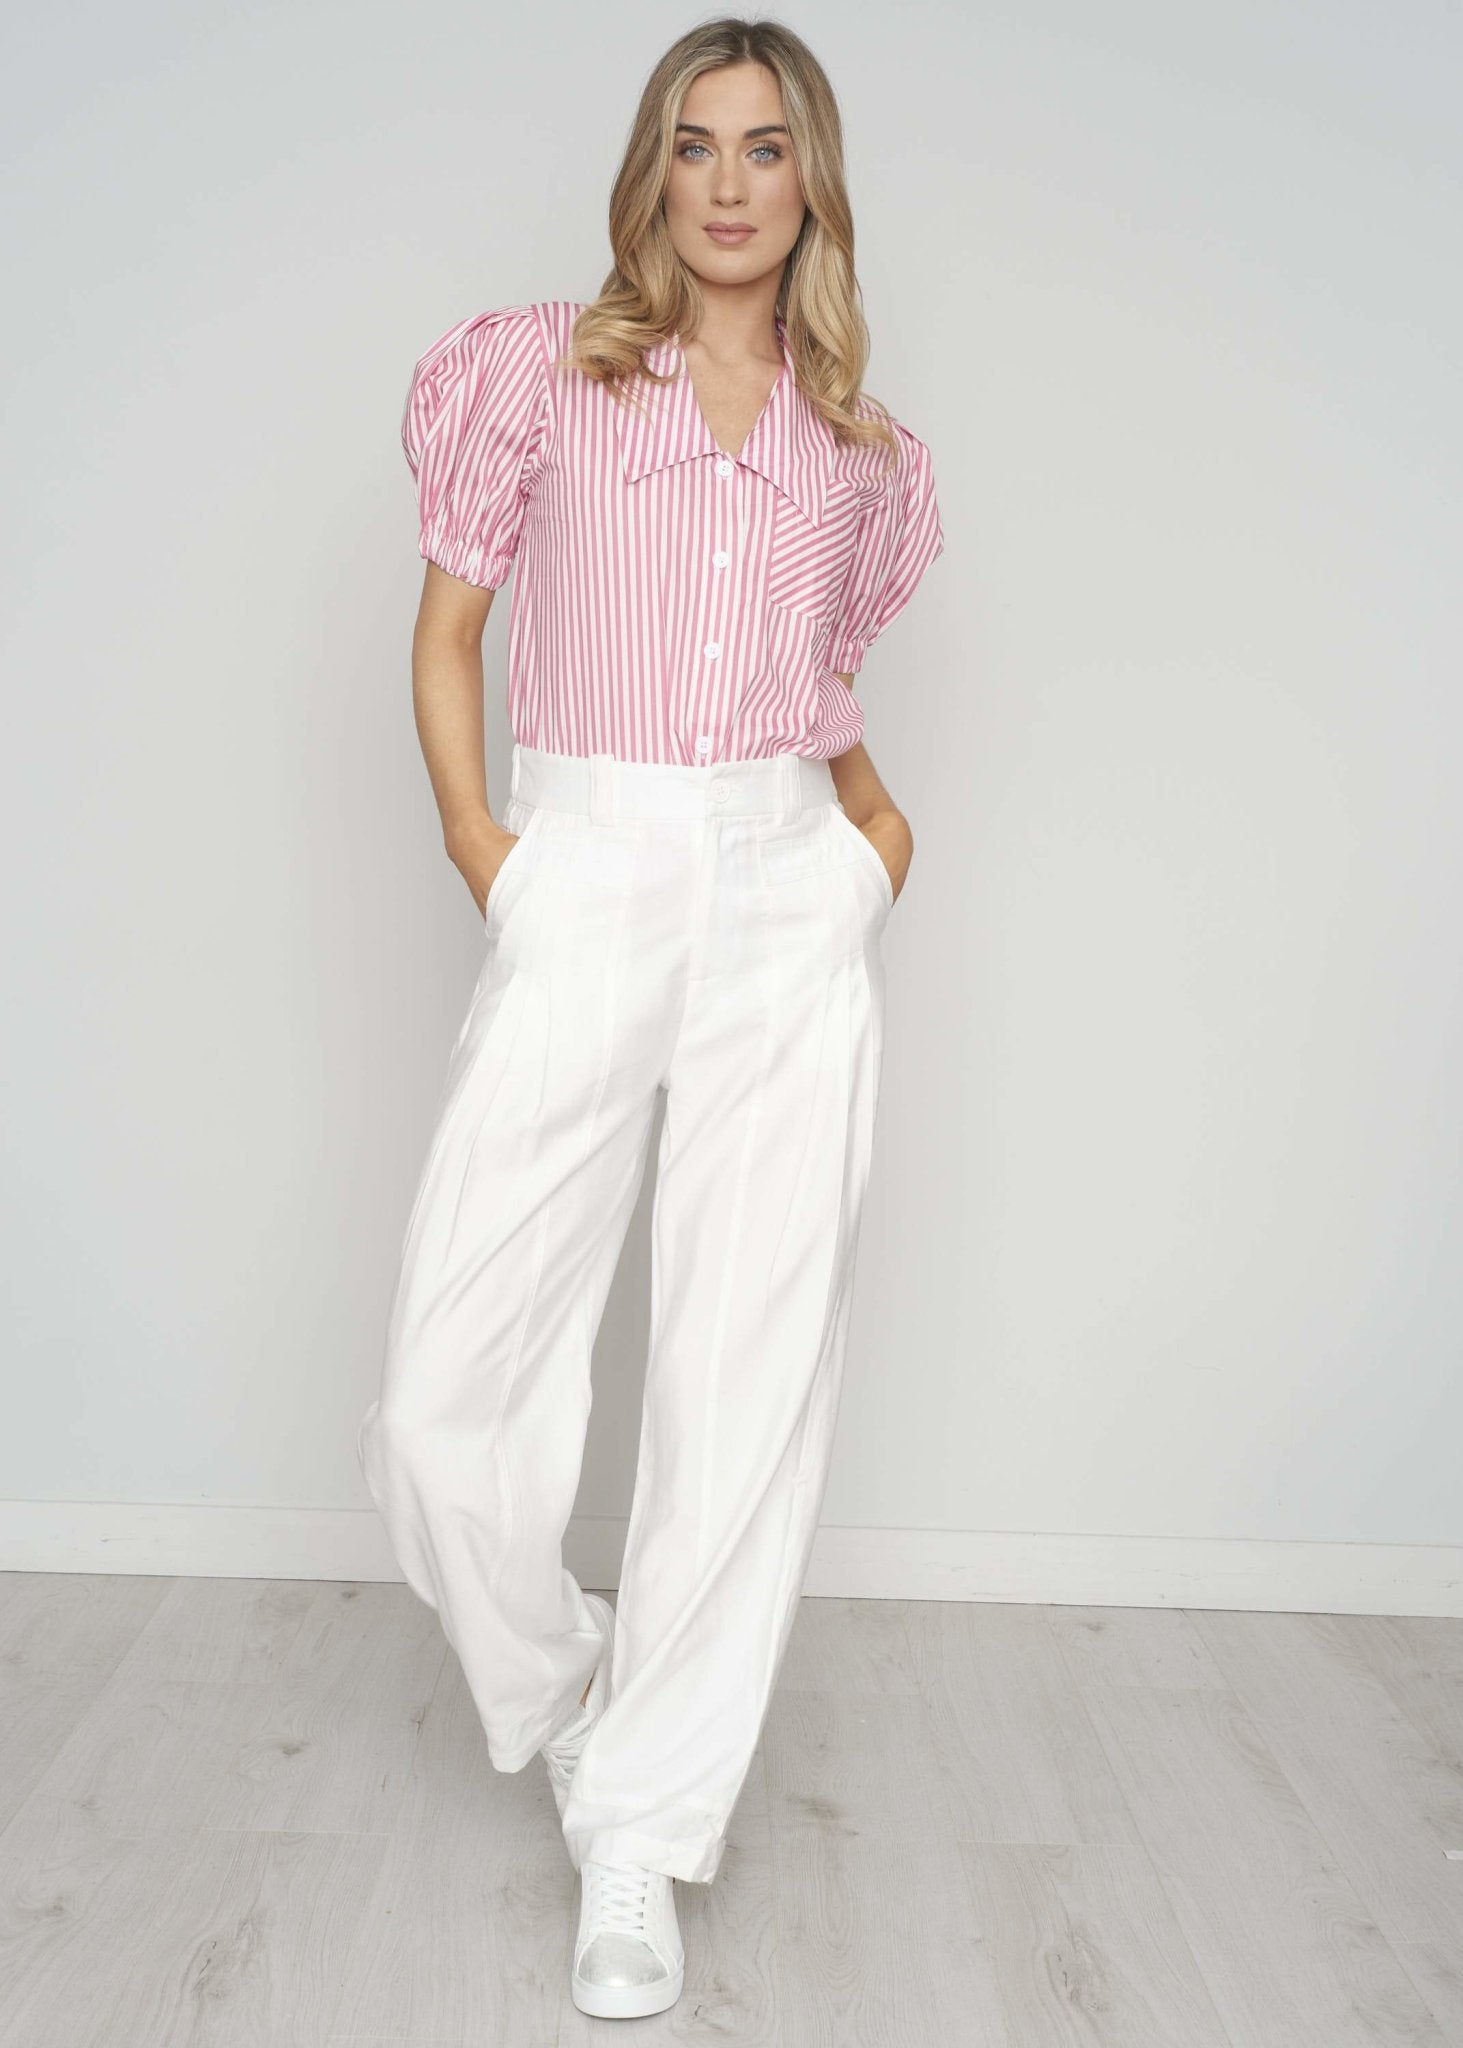 Becca High Waist Trouser In White - The Walk in Wardrobe